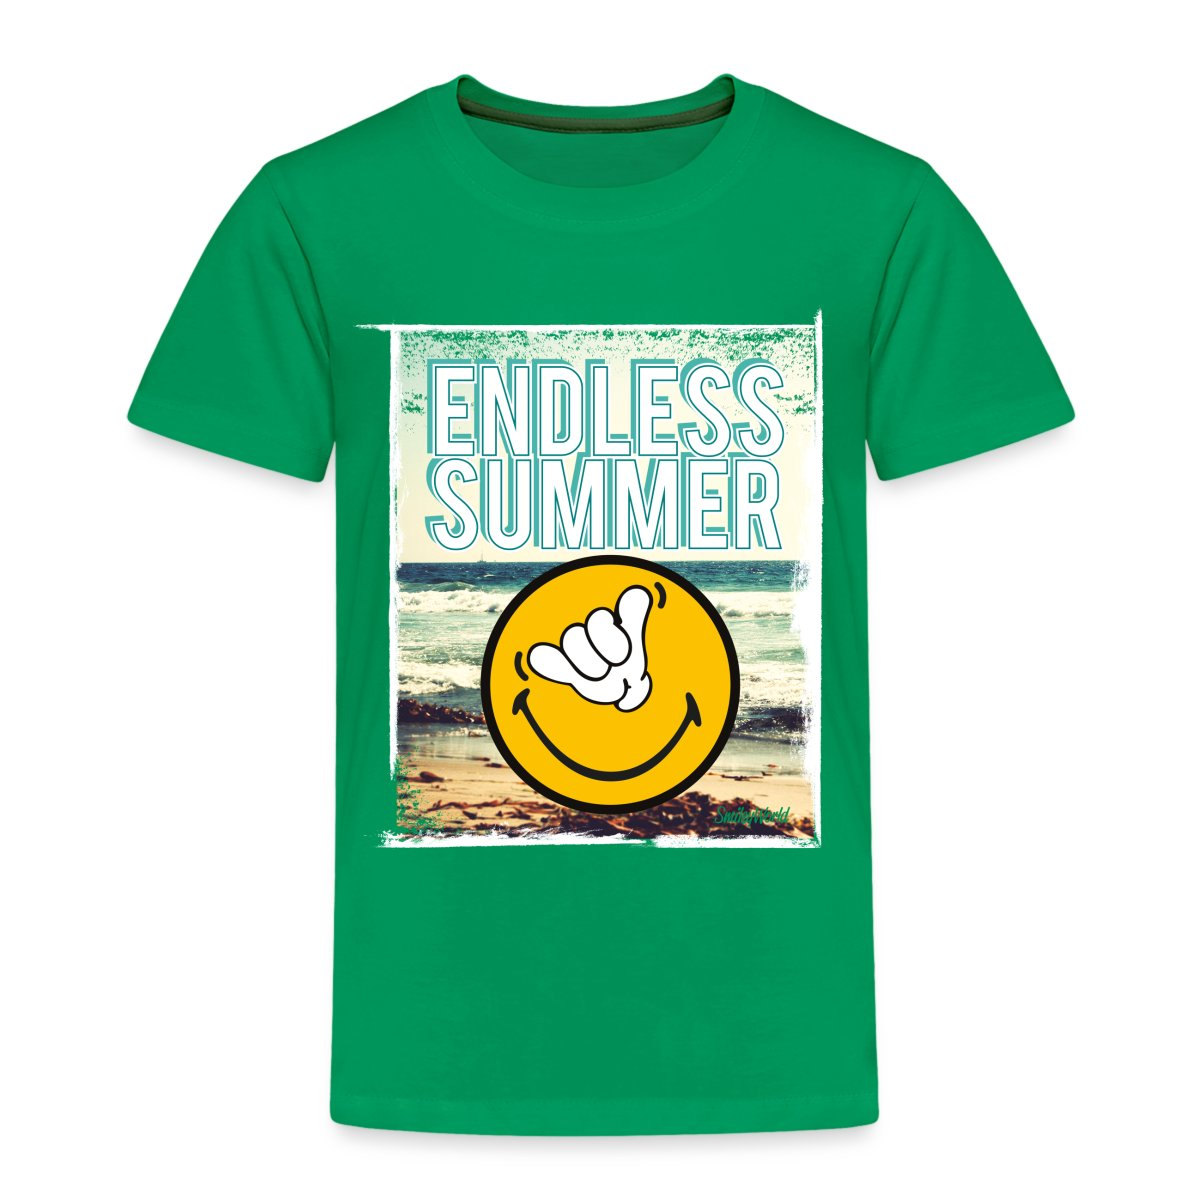 Smiley-World-Endless-Summer-Kinder-Premium-T-Shirt-von-Spreadshirt